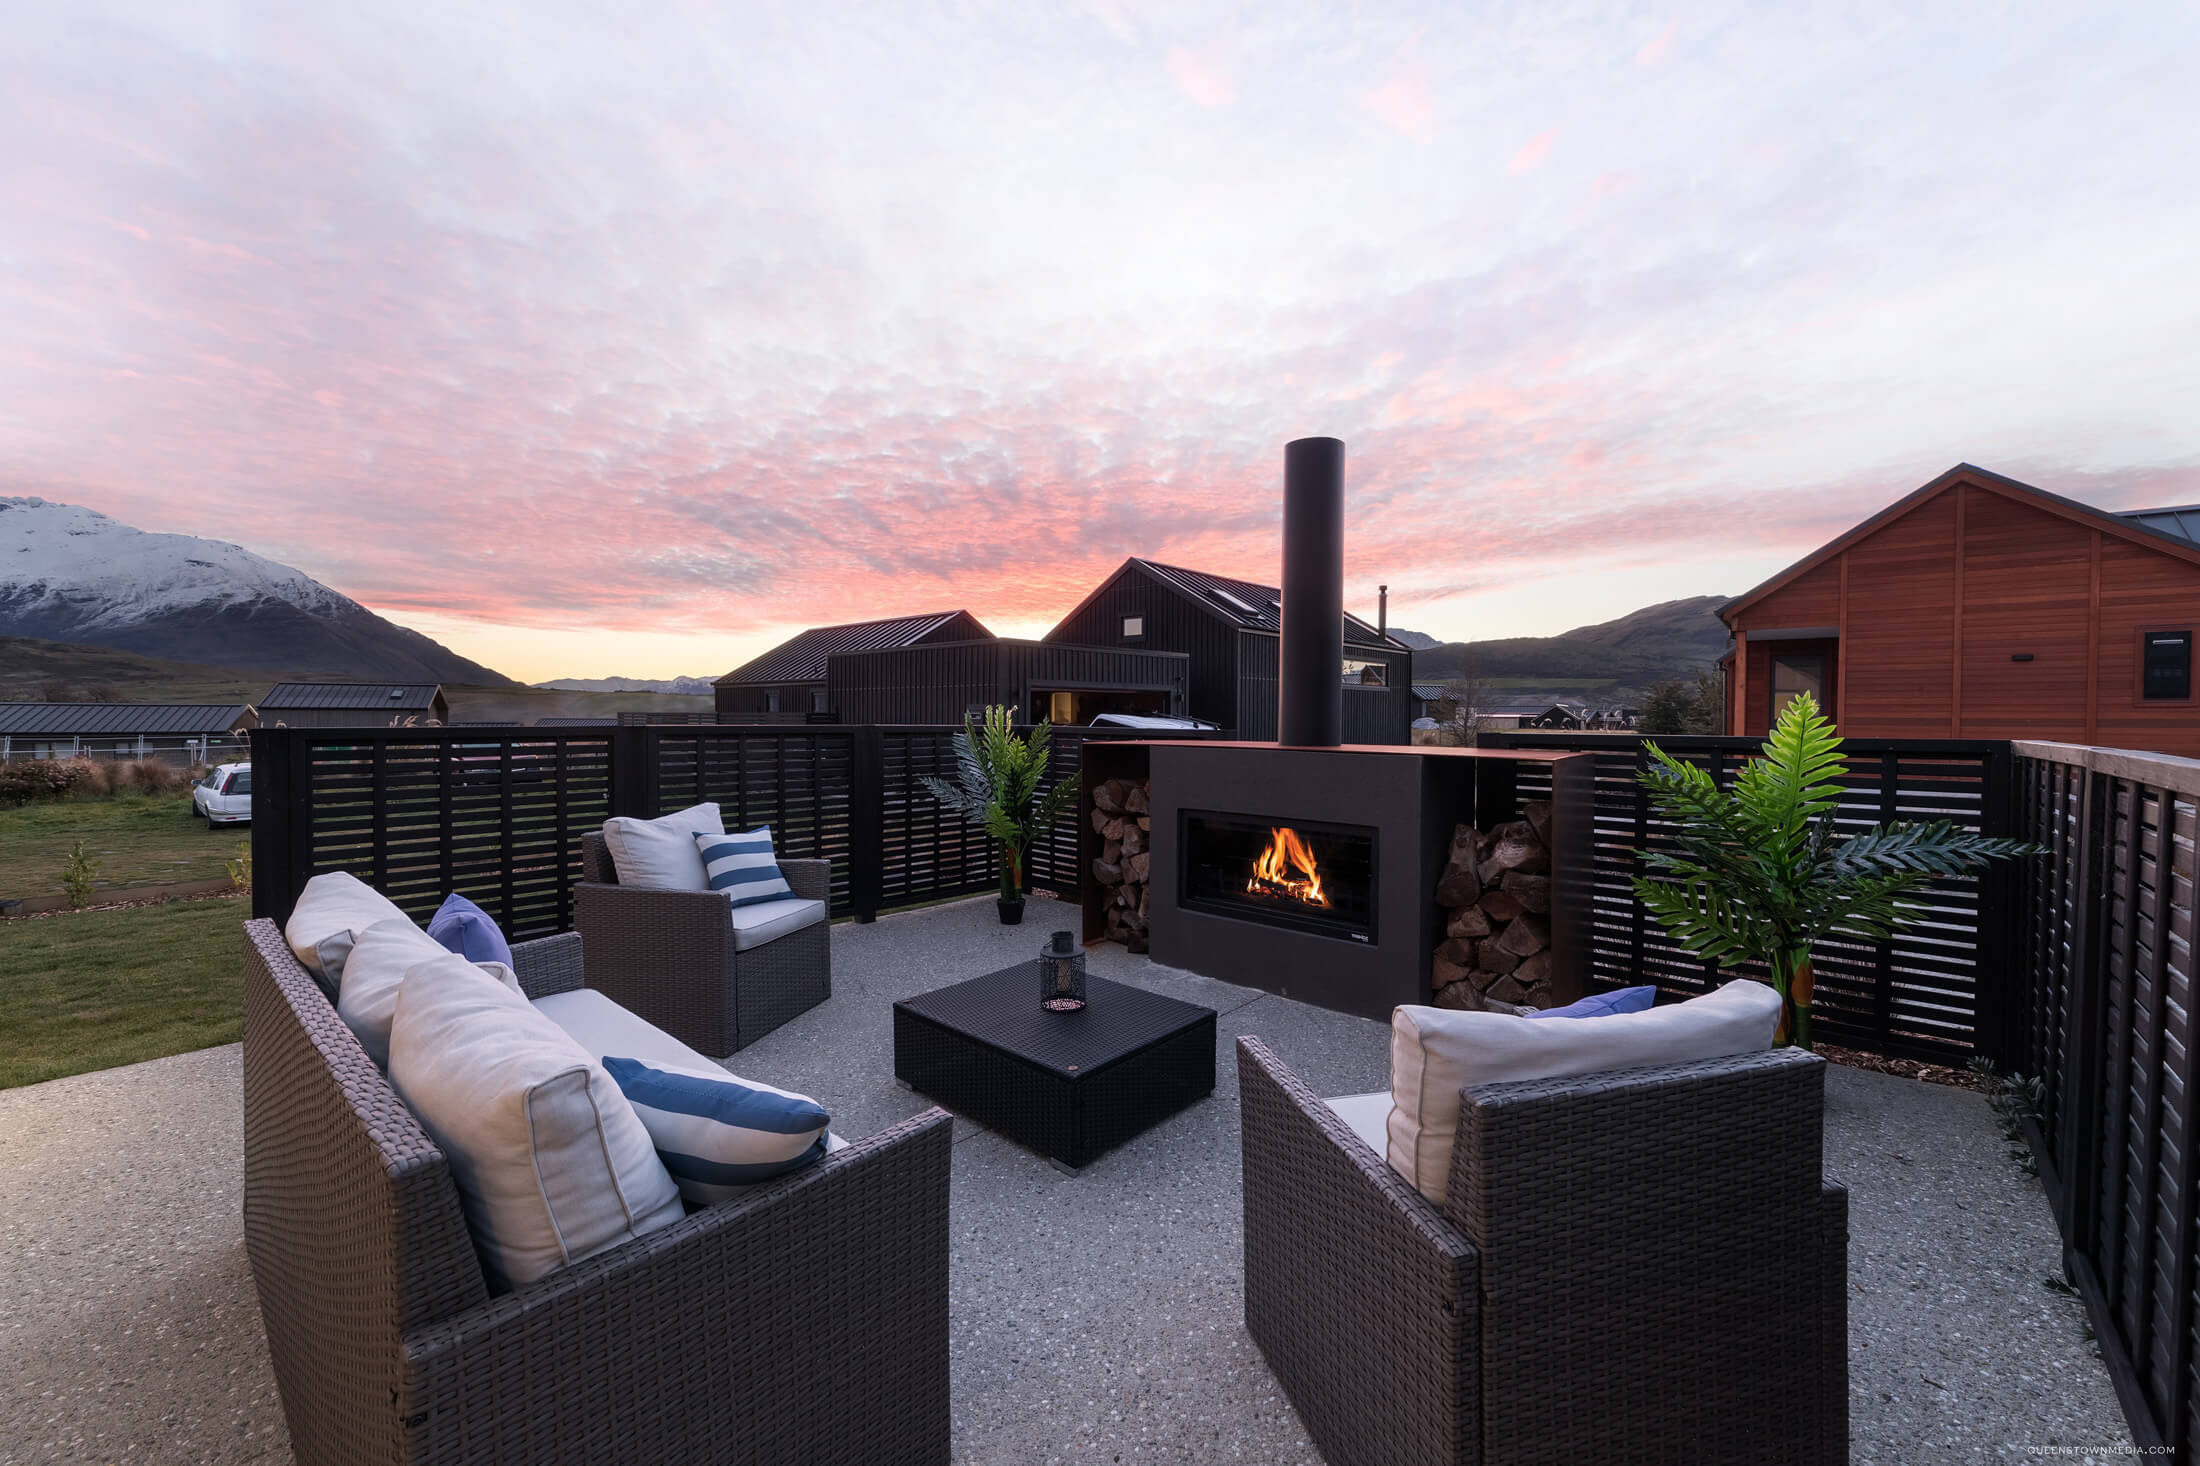 Fireplace for outdoor entertaining